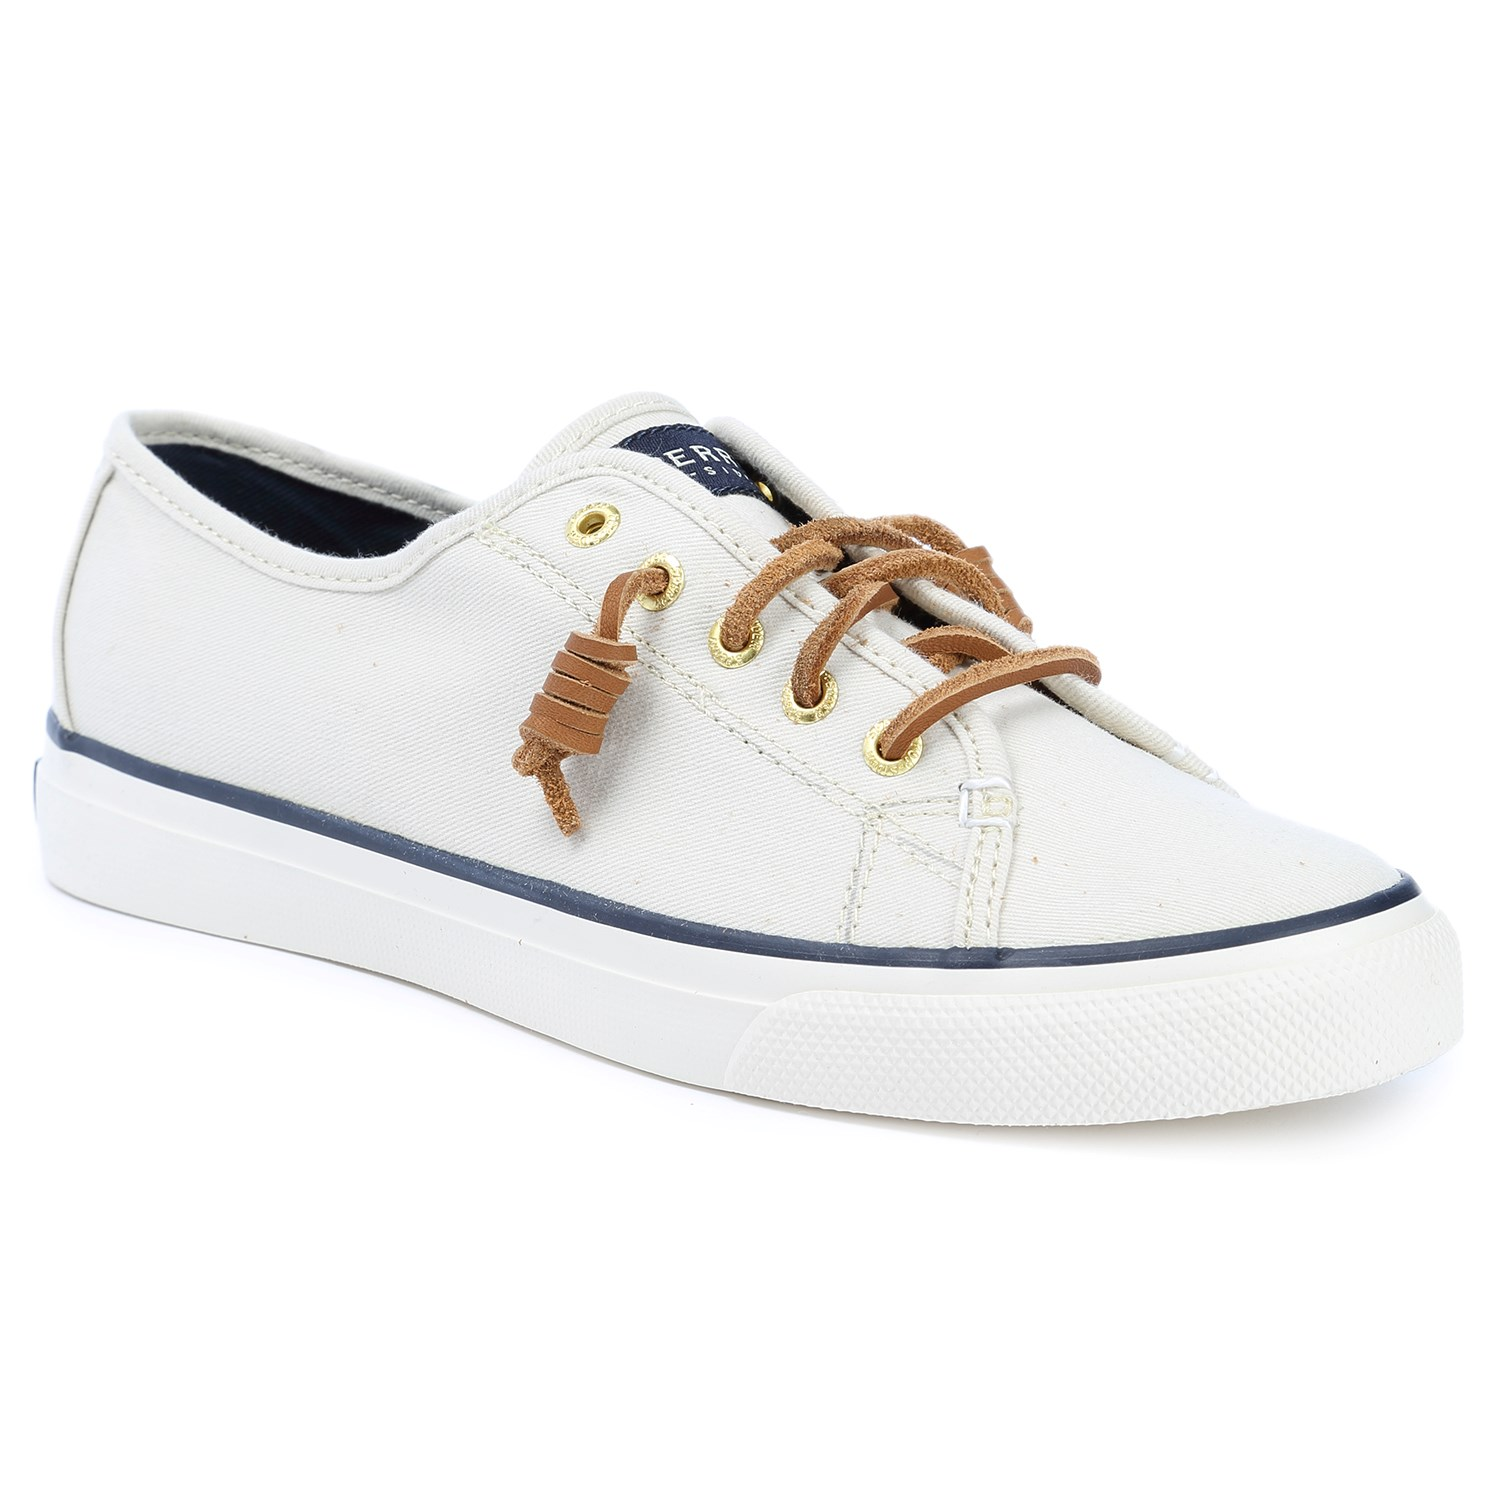 Get Sperry Coupons and Coupon Codes, plus earn 7% cash back when you shop through hereifilessl.ga! Sign up and get paid to shop today! Sign up and get paid to shop today! Find thousands of coupons, promo codes and discounts at Ebates Canada.